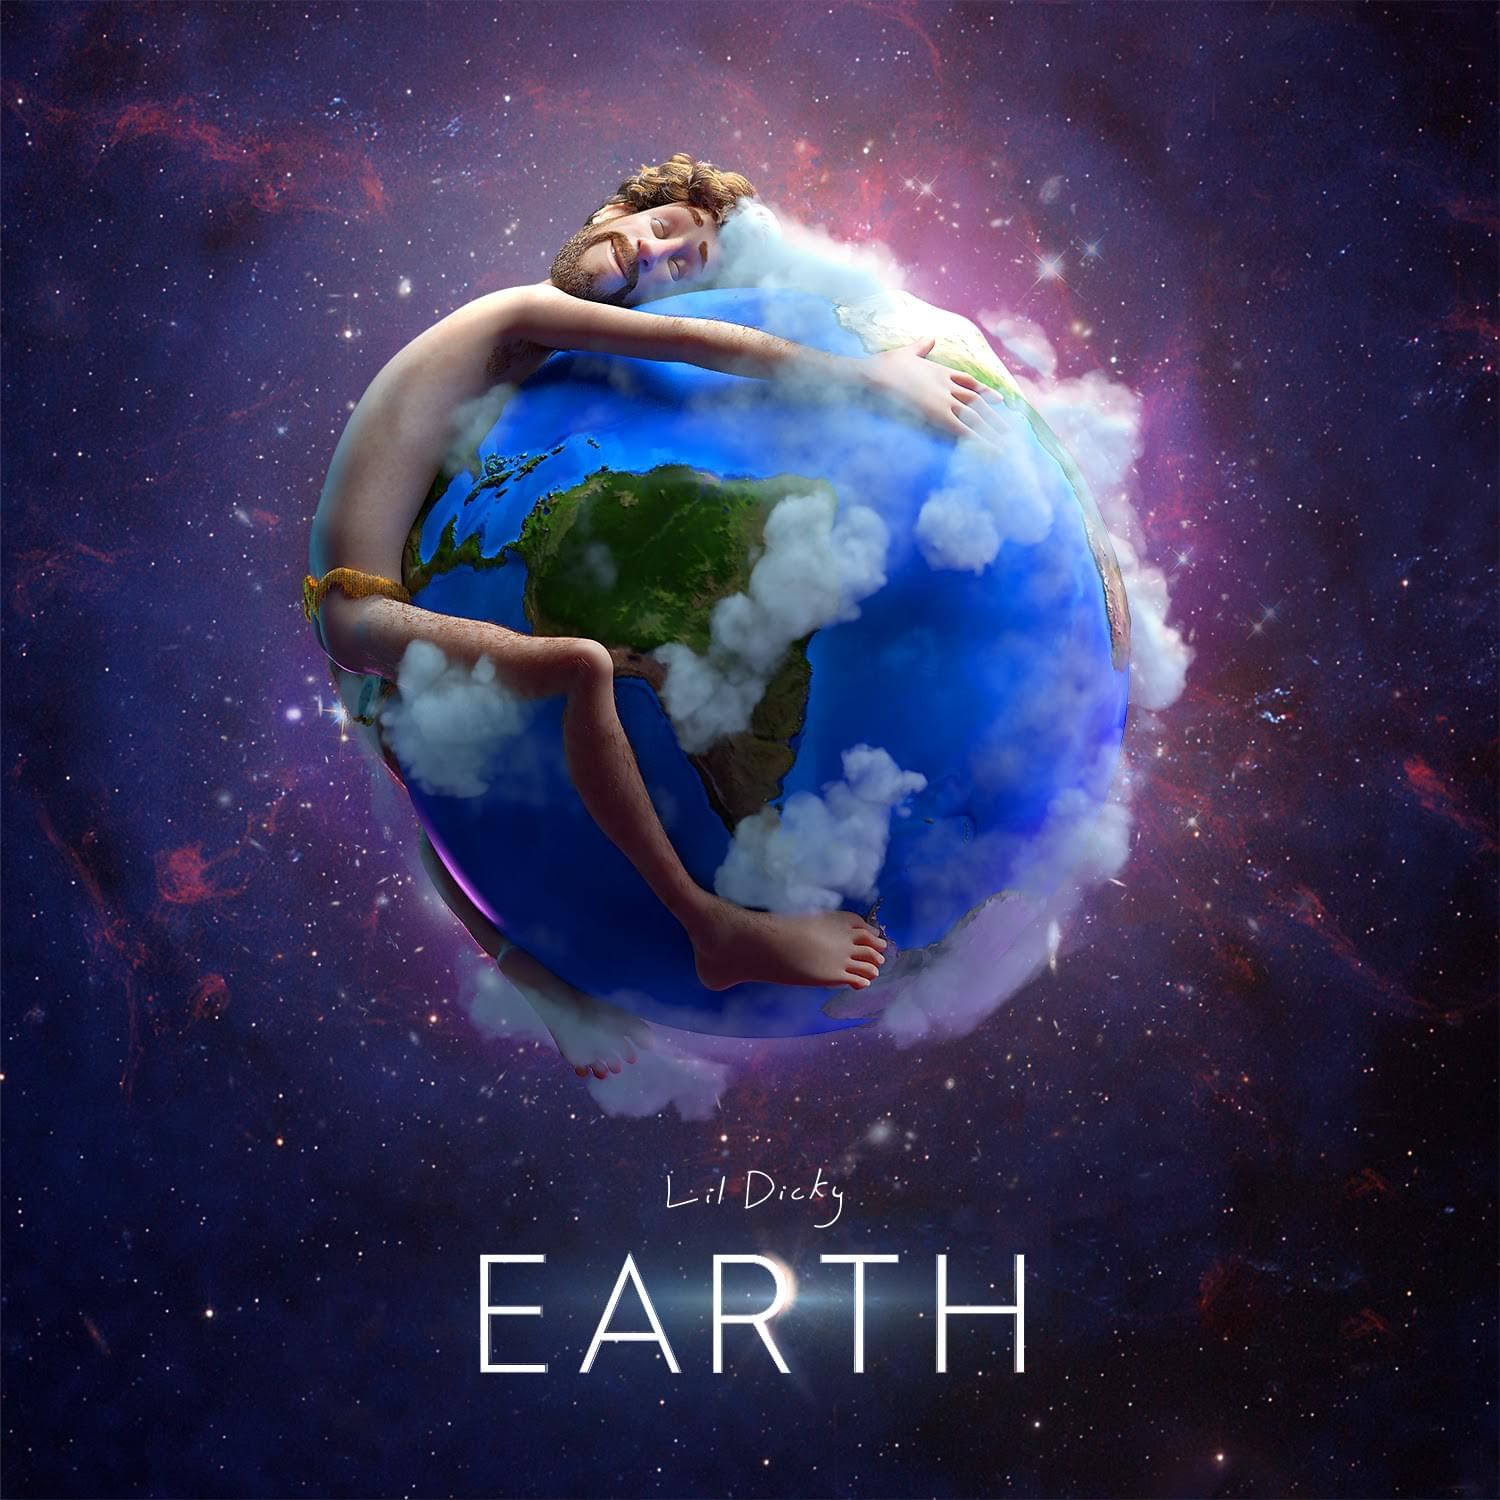 HERES the FEATURE LIST on LIL DICKY'S new EARTH tune!